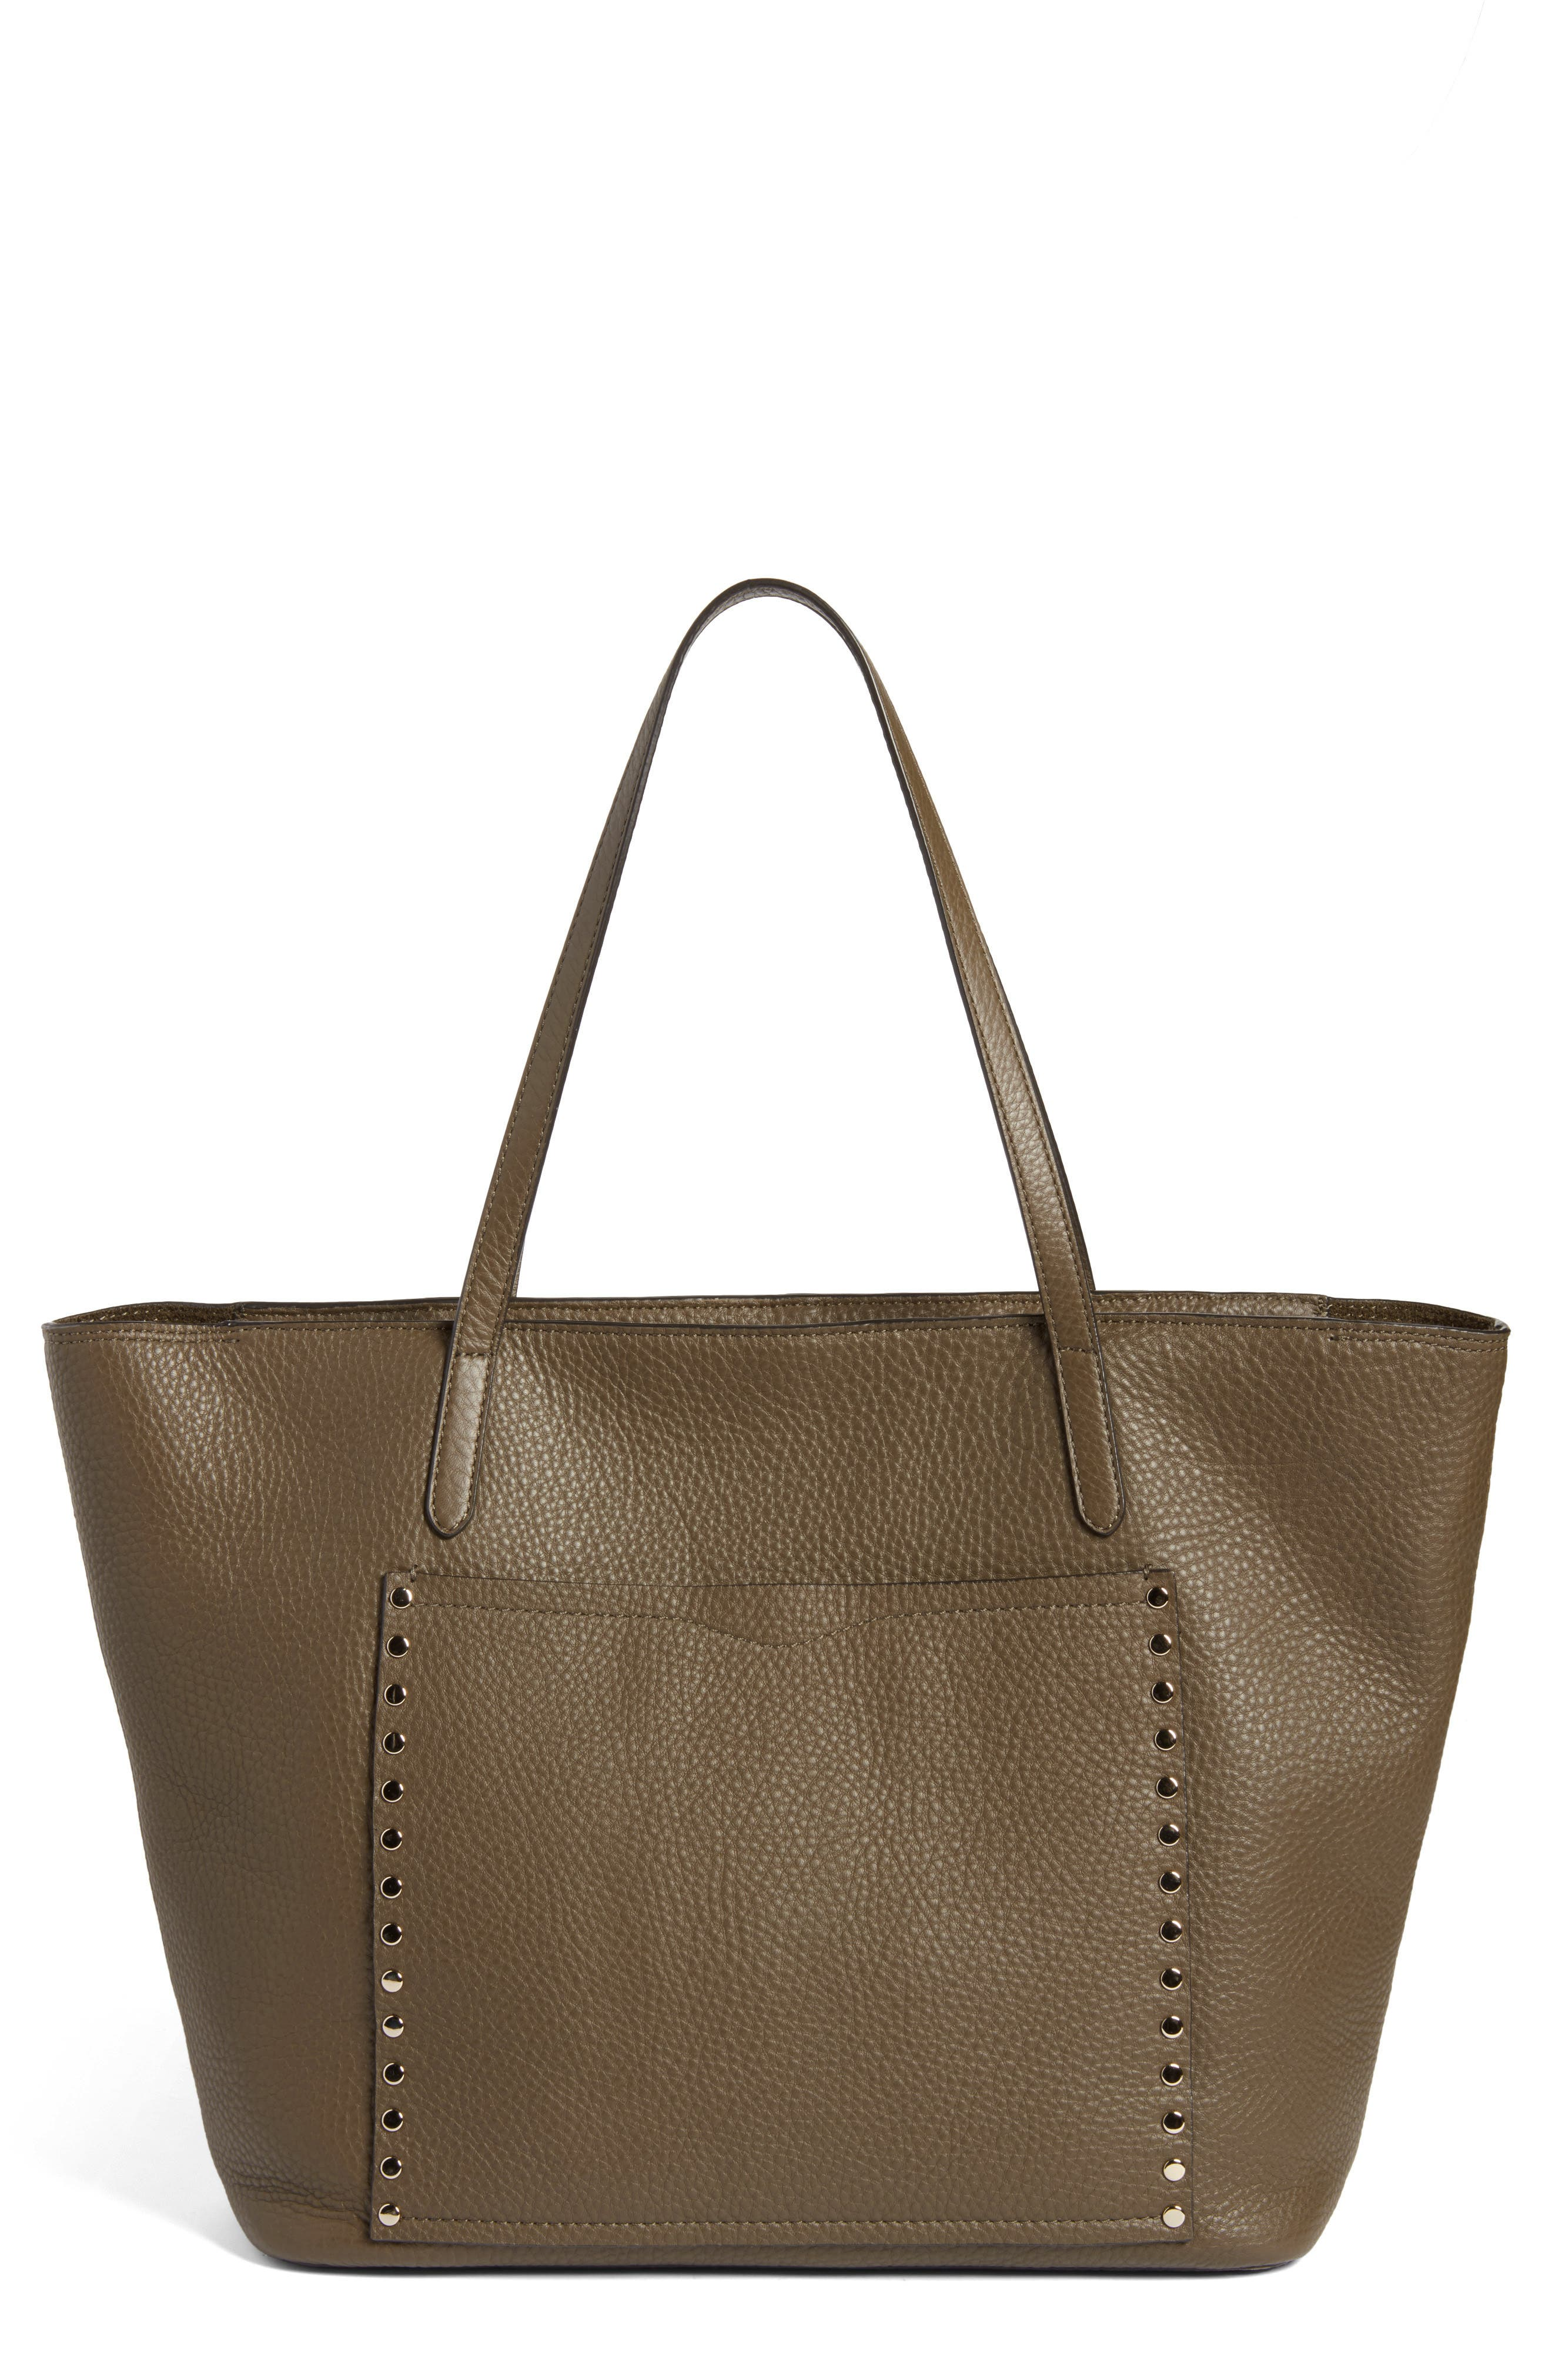 Alternate Image 1 Selected - Rebecca Minkoff Unlined Front Pocket Leather Tote (Nordstrom Exclusive)